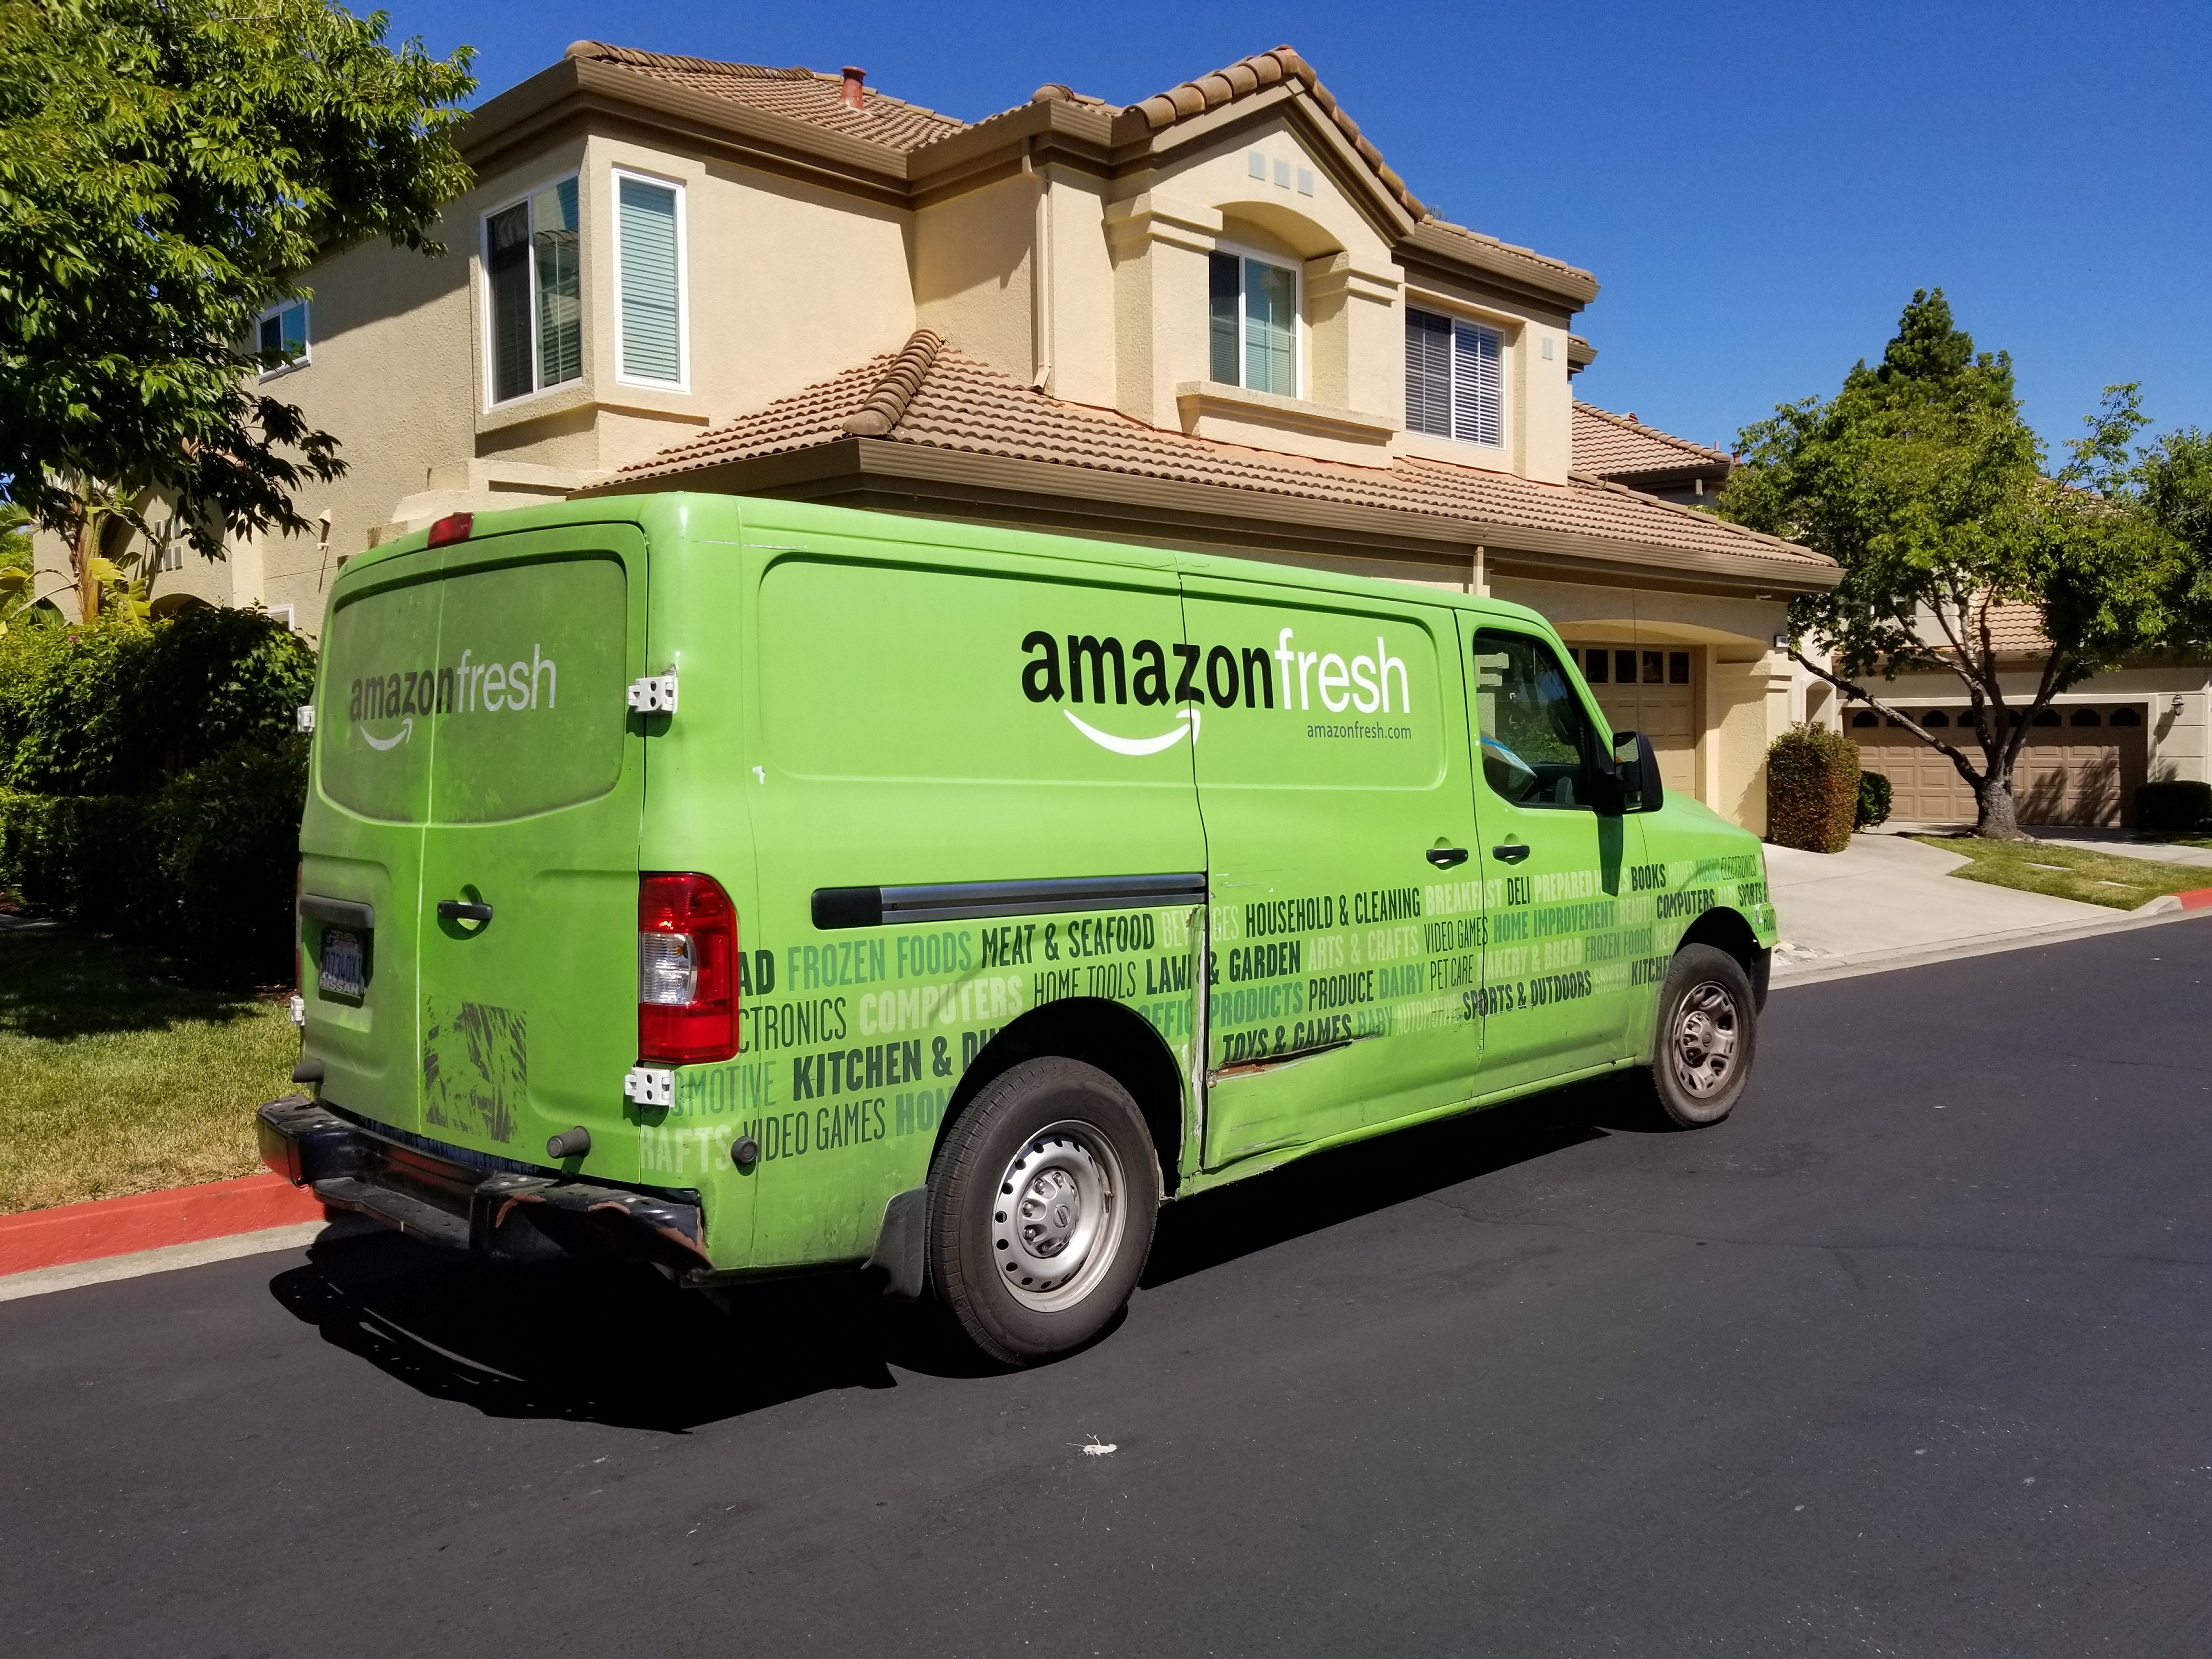 Amazon's new plan to dominate grocery delivery: making AmazonFresh totally free for Prime members